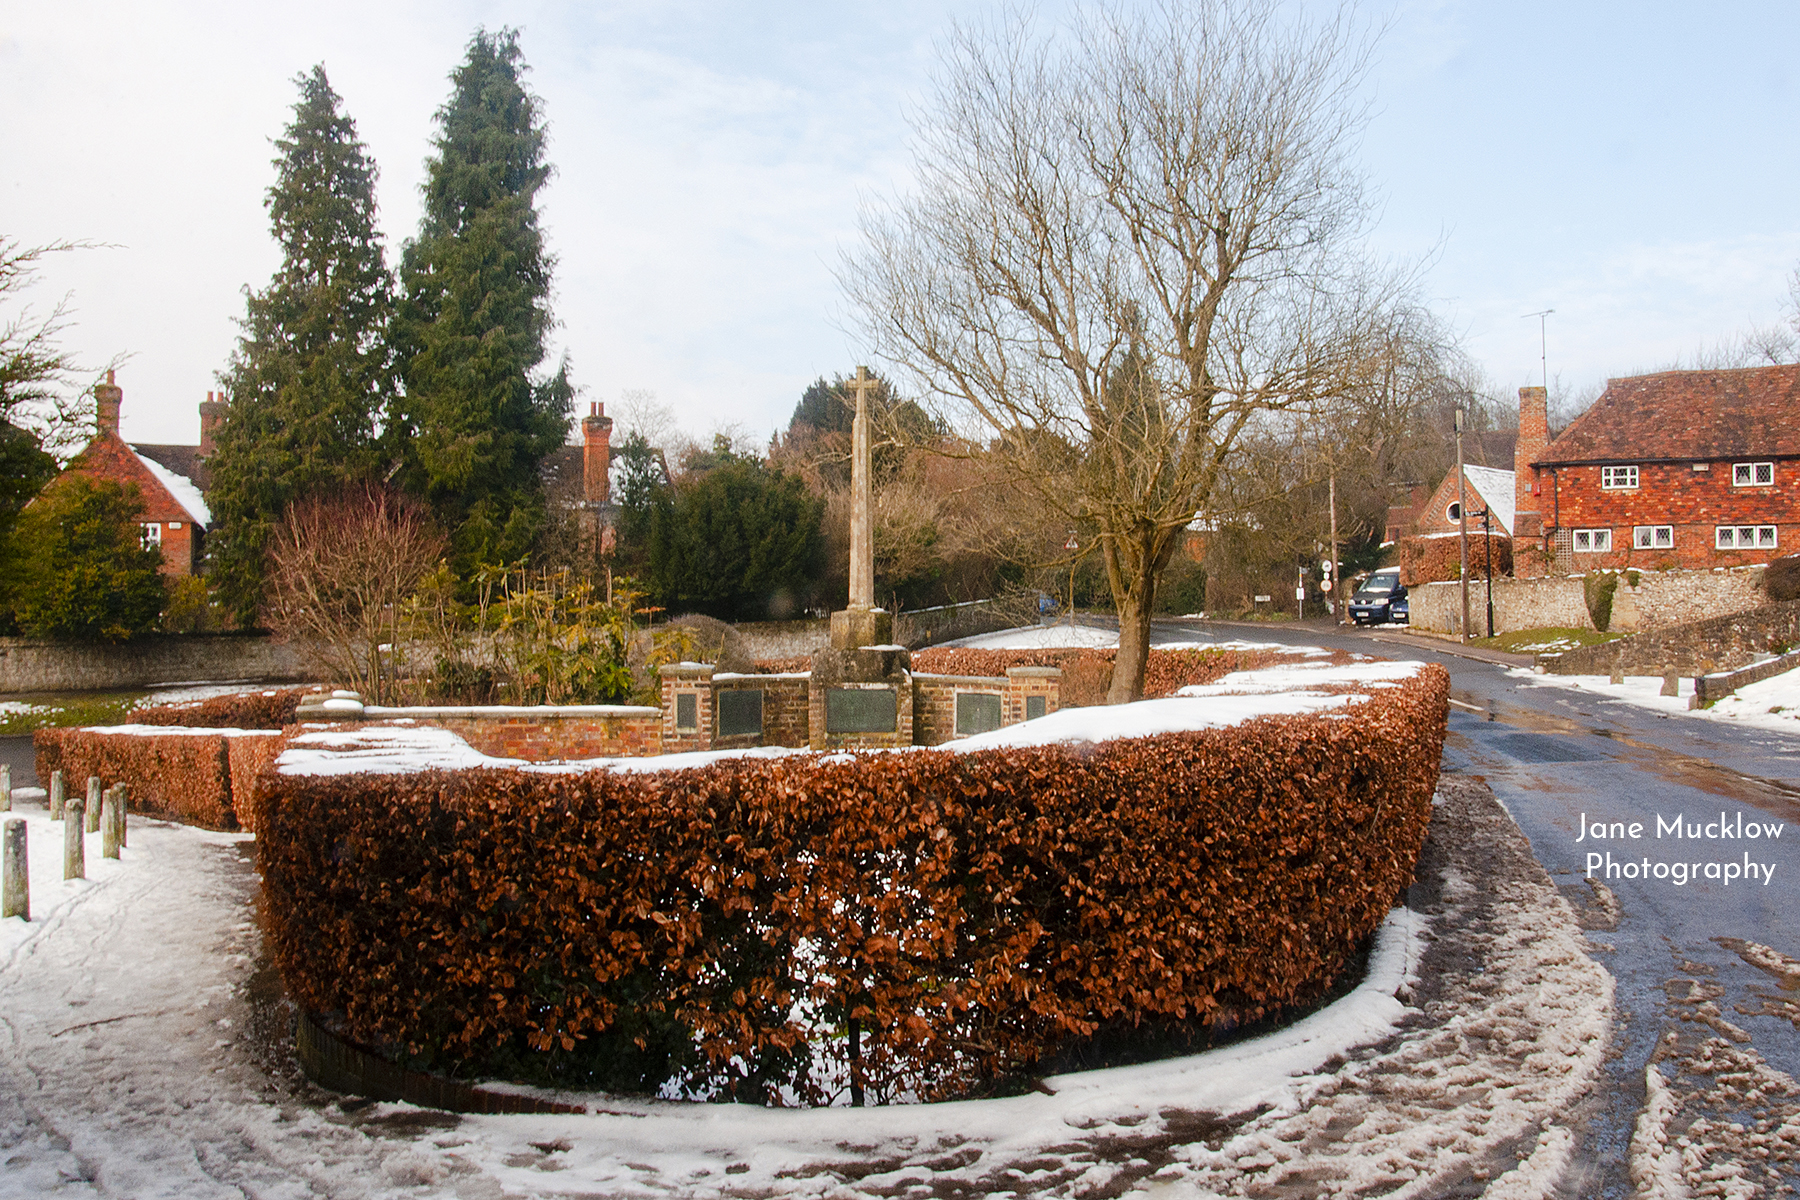 Photo by Jane Mucklow of the war memorial in Kemsing, in the snow